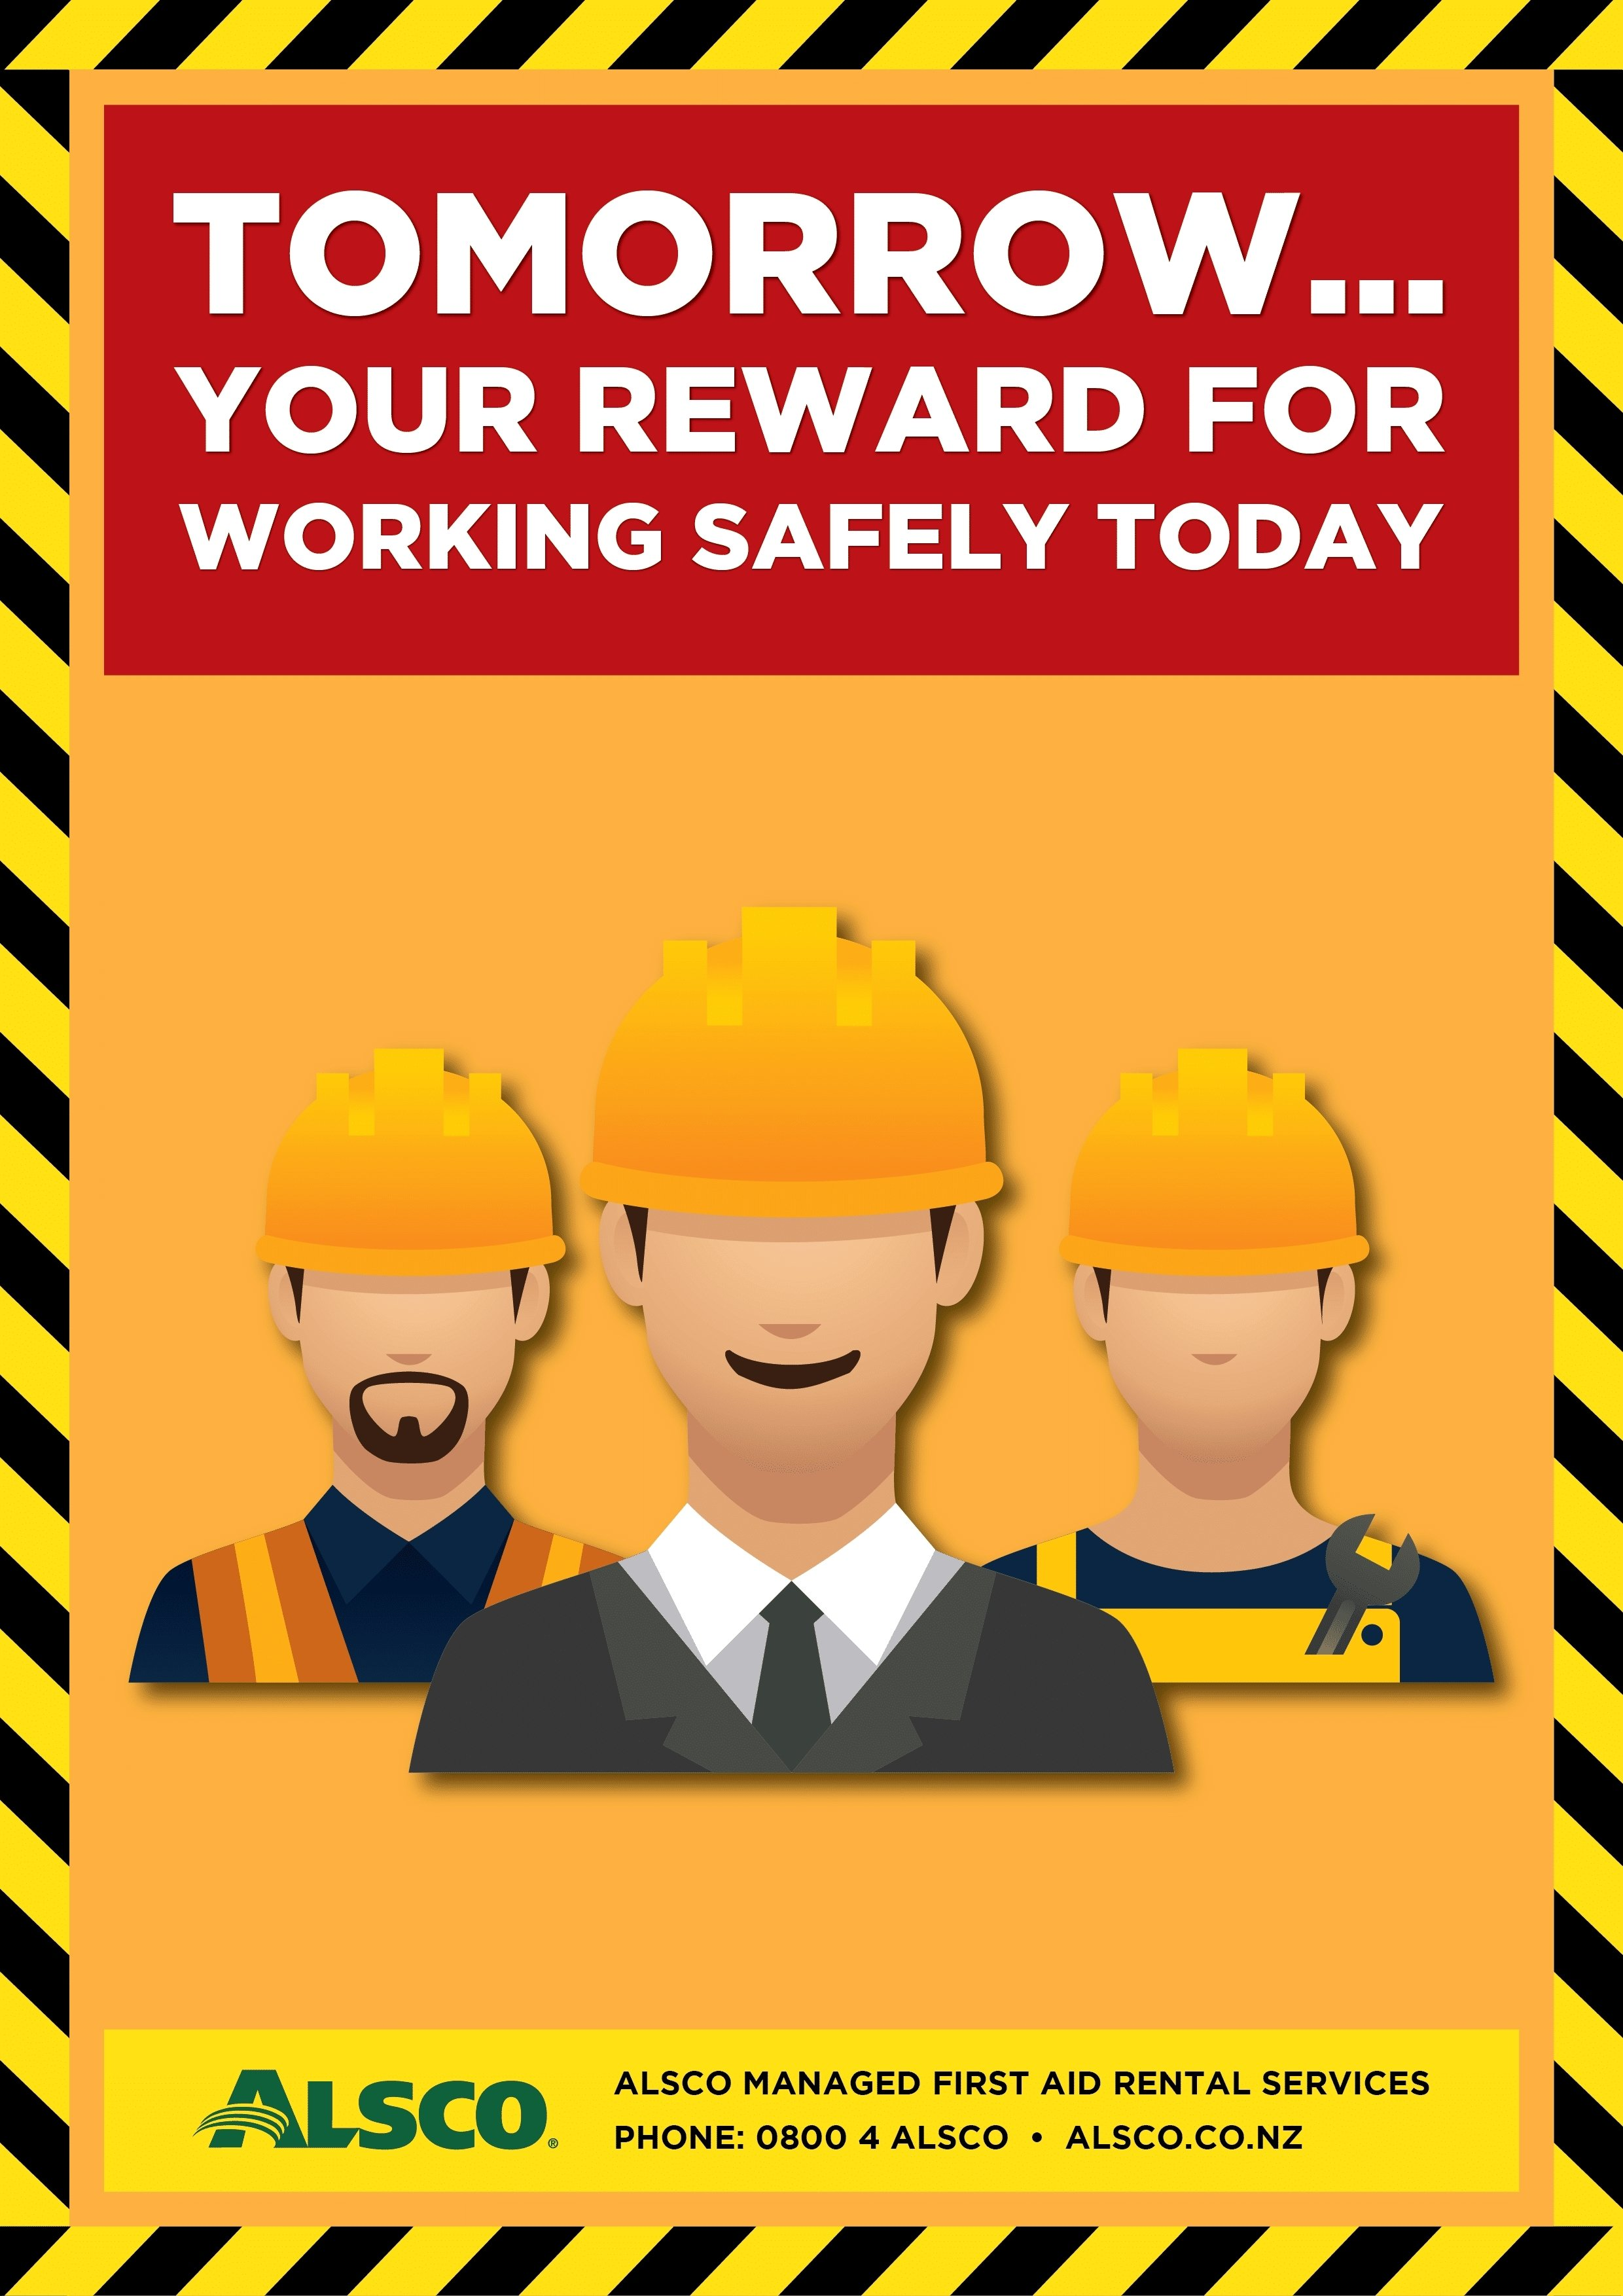 10 Pretty Safety Ideas For The Workplace stunning safety posters workplace and creative ideas of 2 best posters 2020